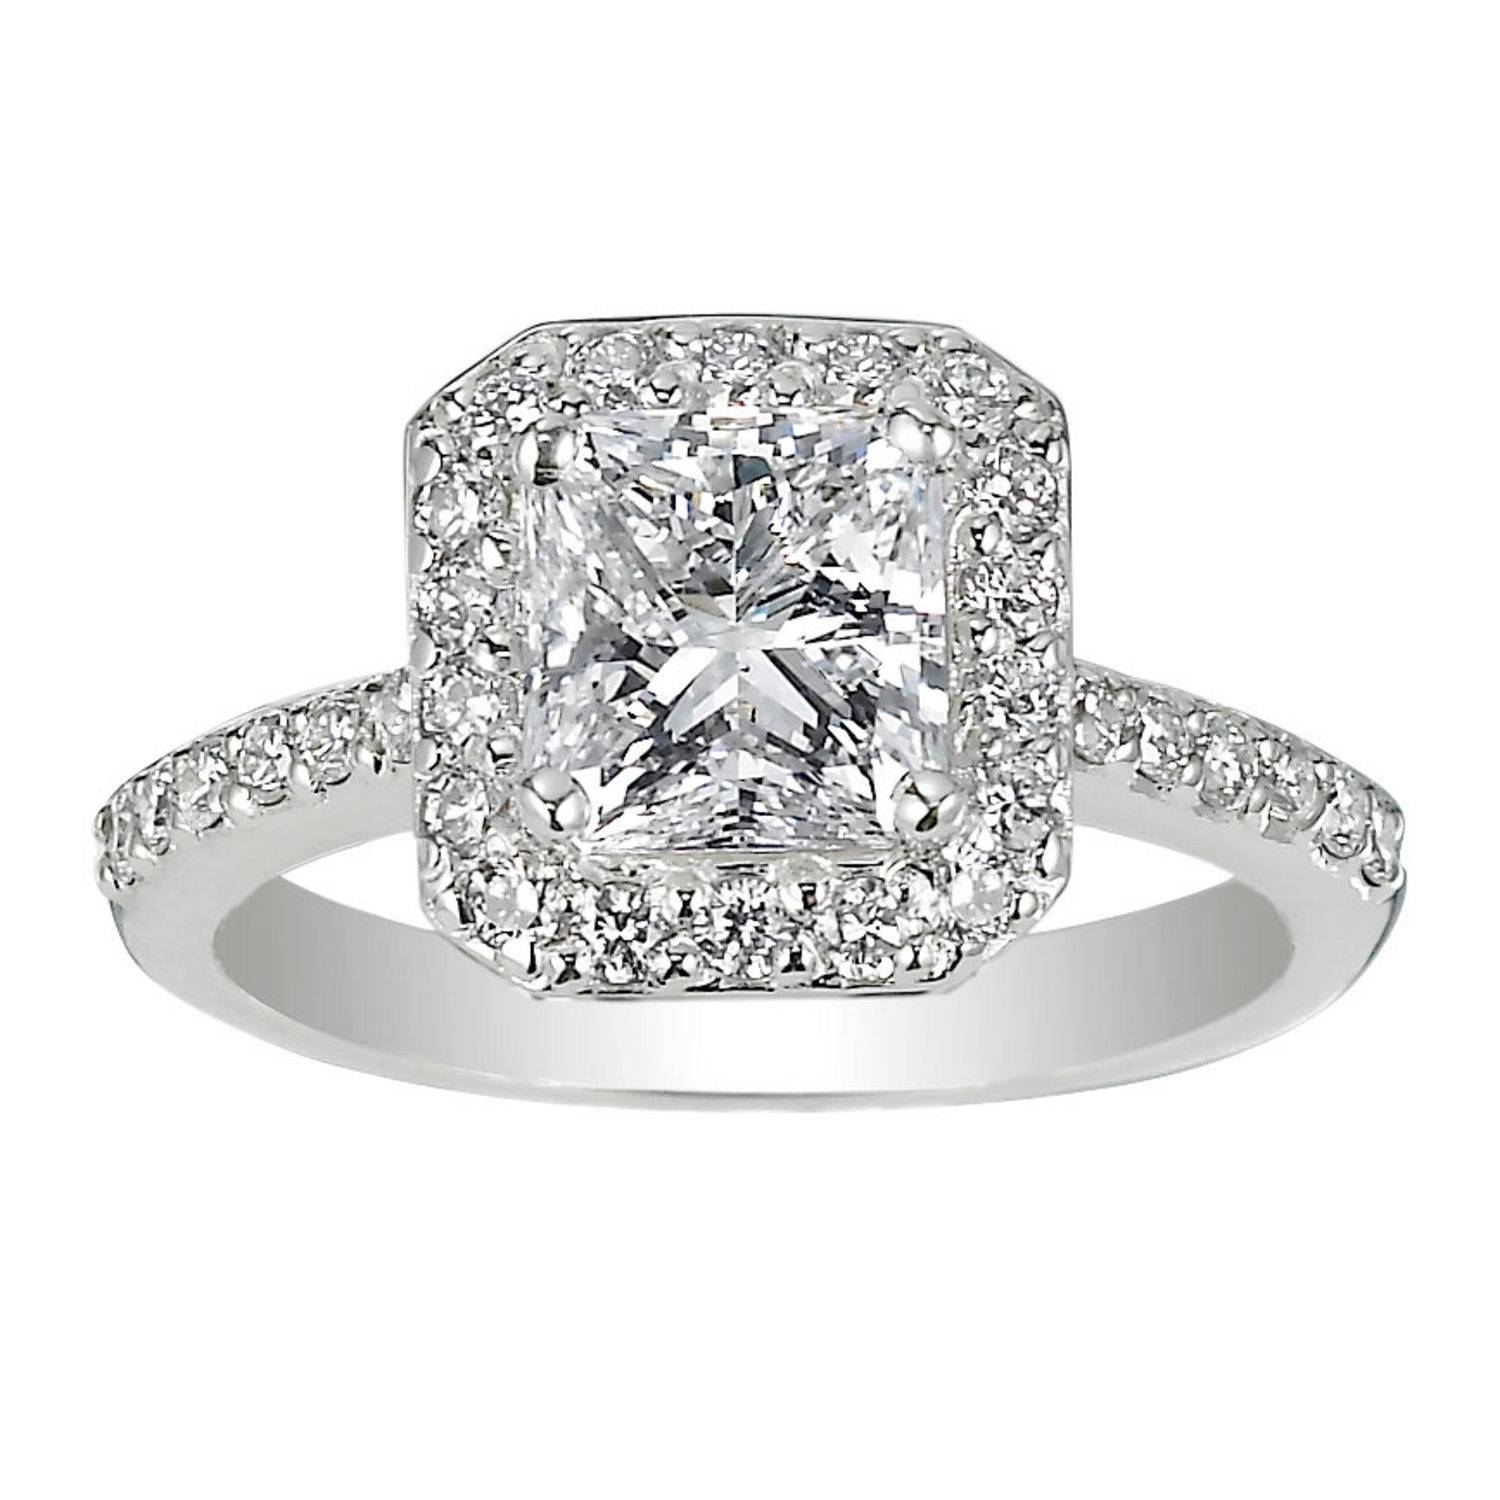 62 Diamond Engagement Rings Under $5,000 | Glamour With Regard To Wedding Engagement Rings (View 2 of 15)